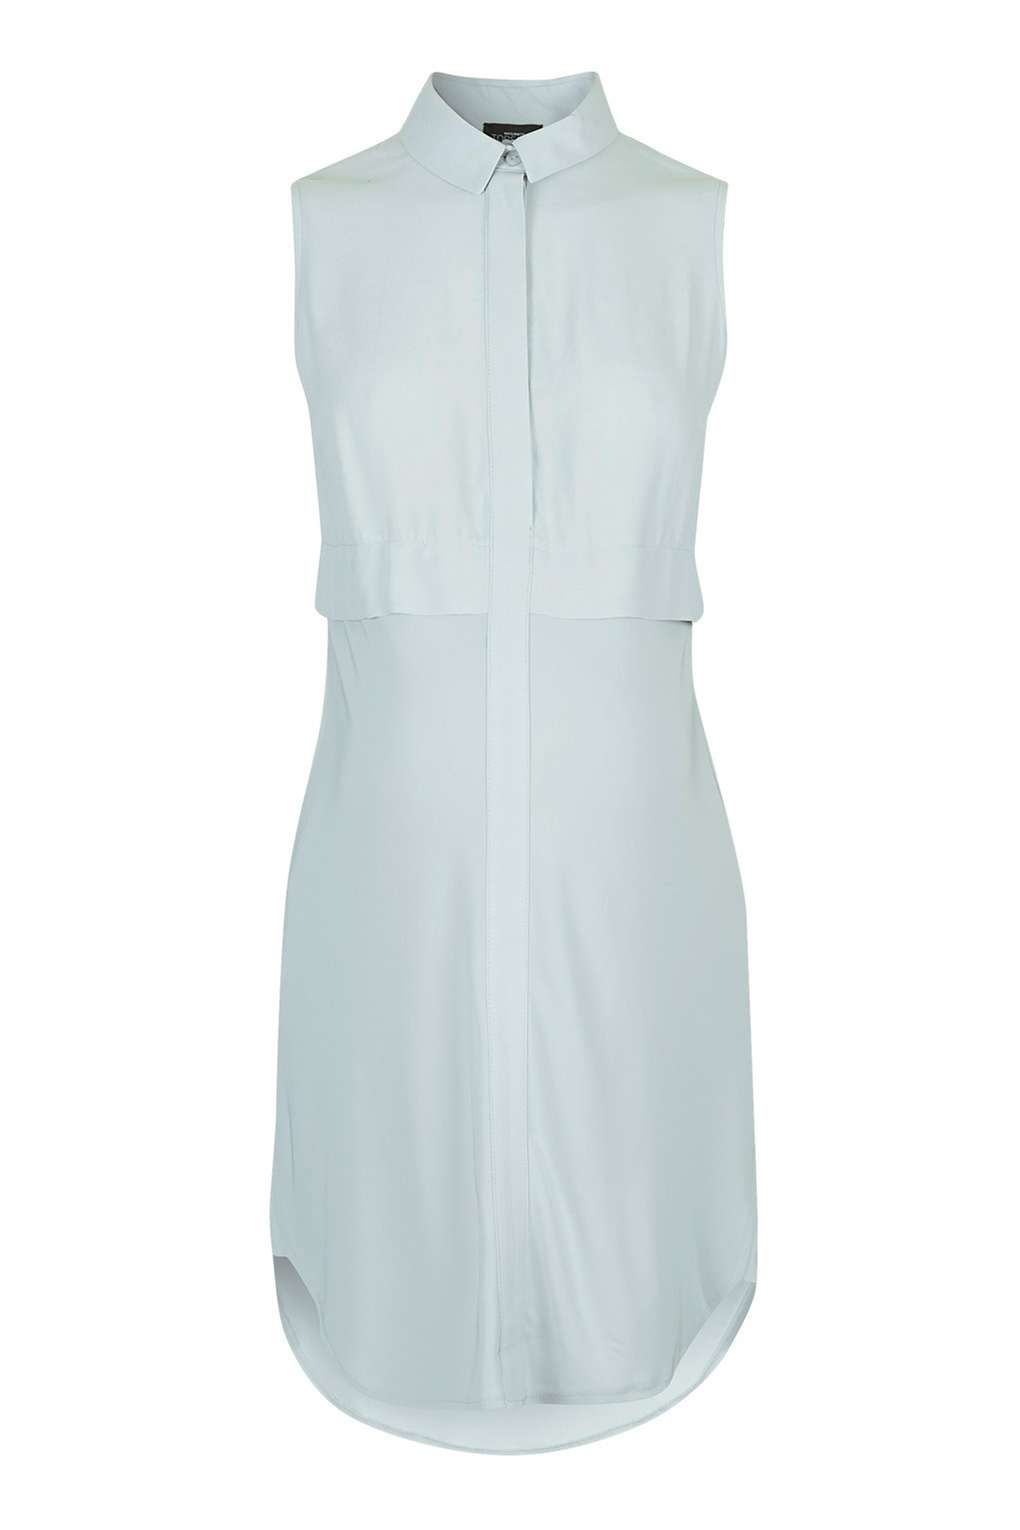 dress – THE MOTHERSHOP